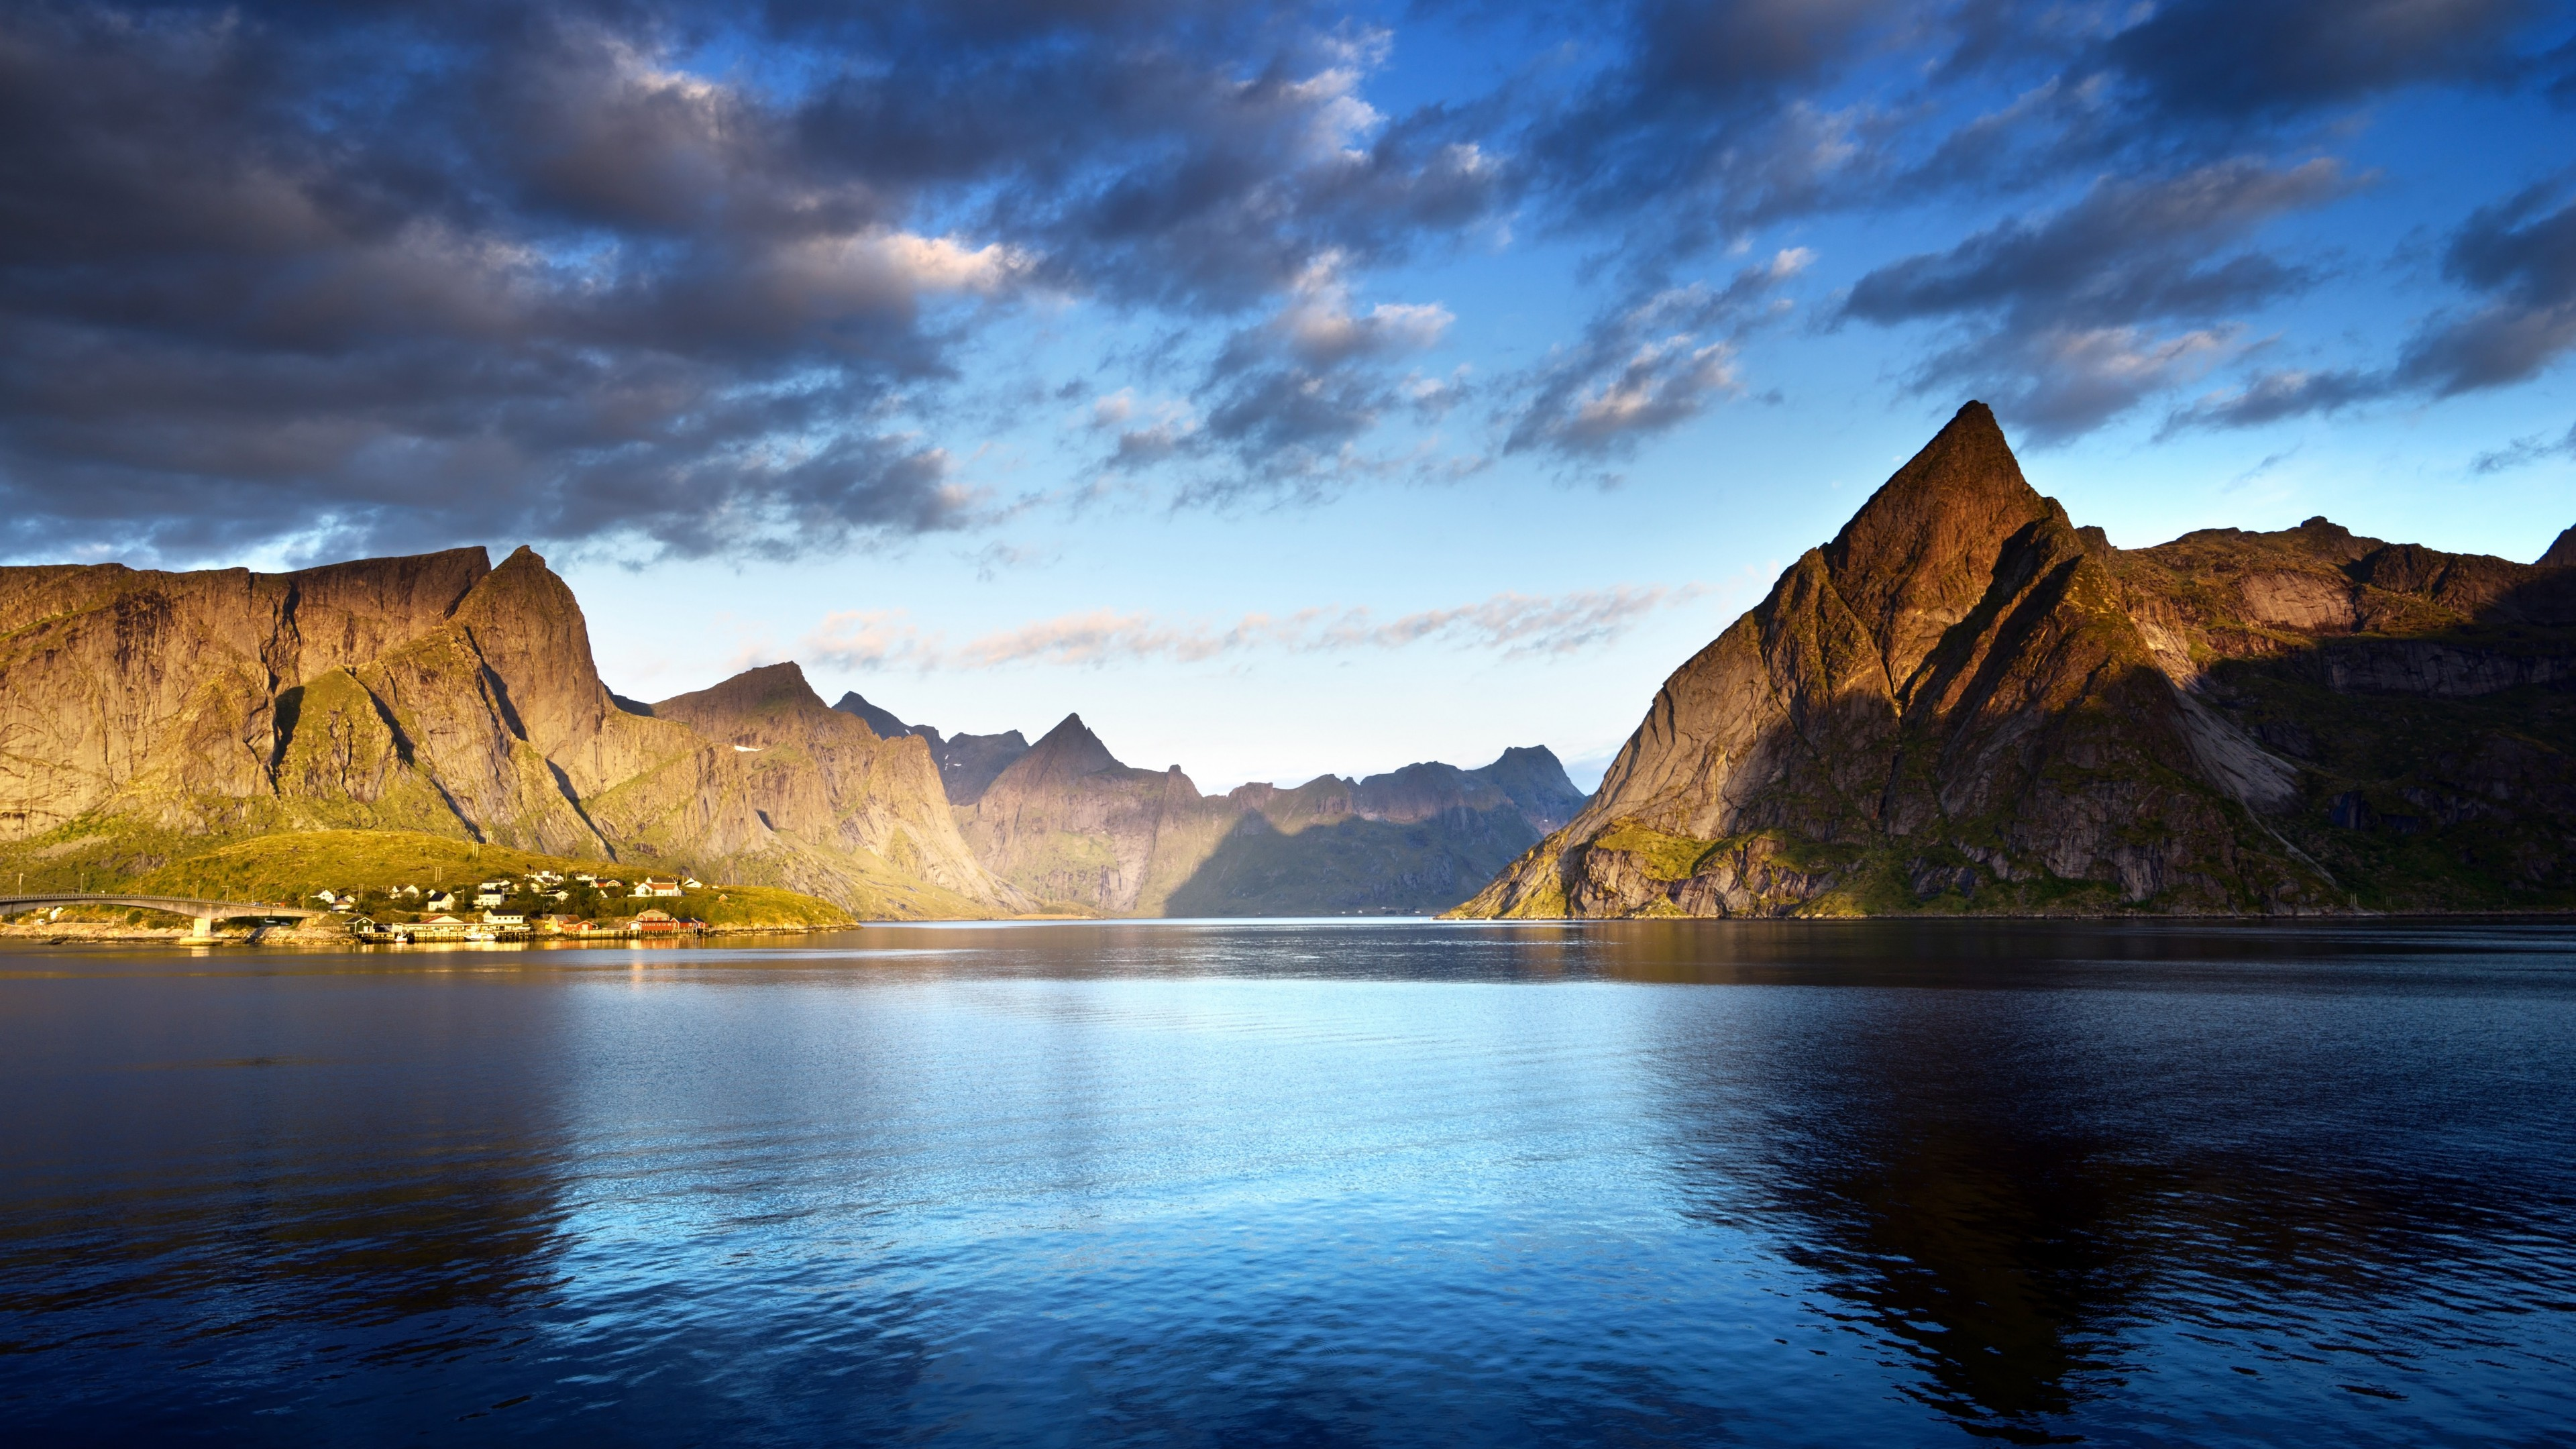 Wallpaper Norway Lofoten Islands Europe Mountains Sea